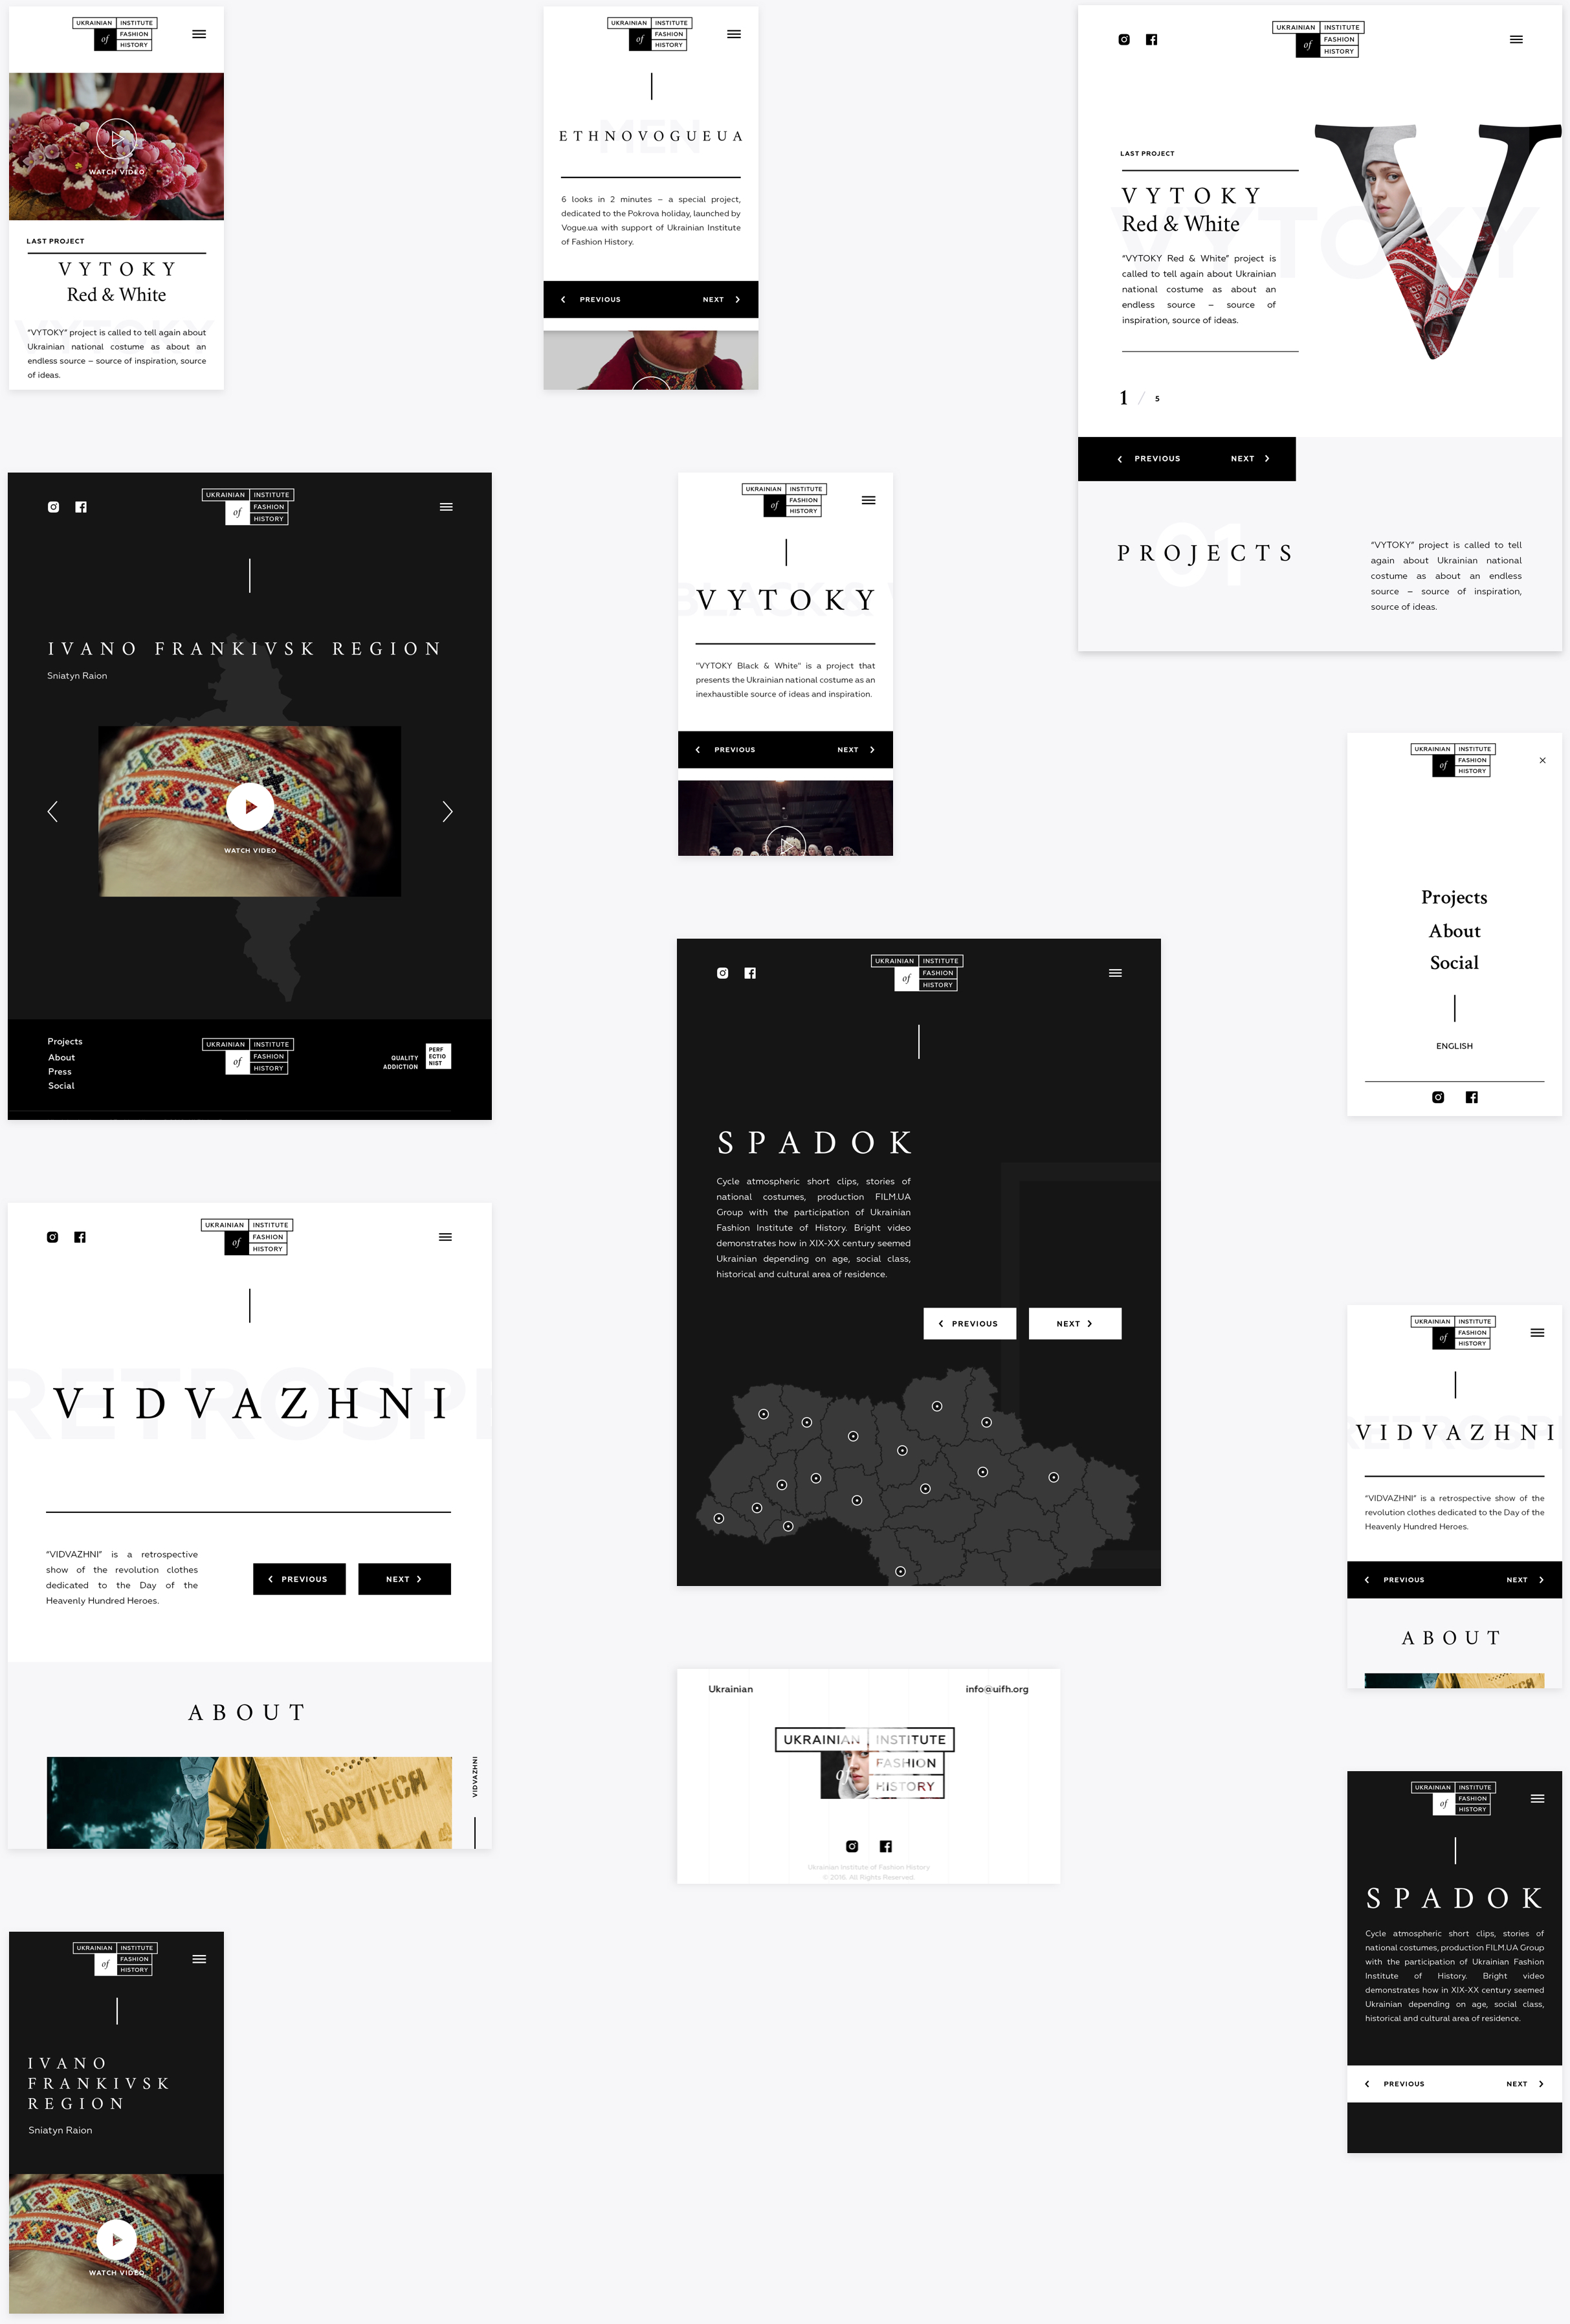 images_responsive@2x